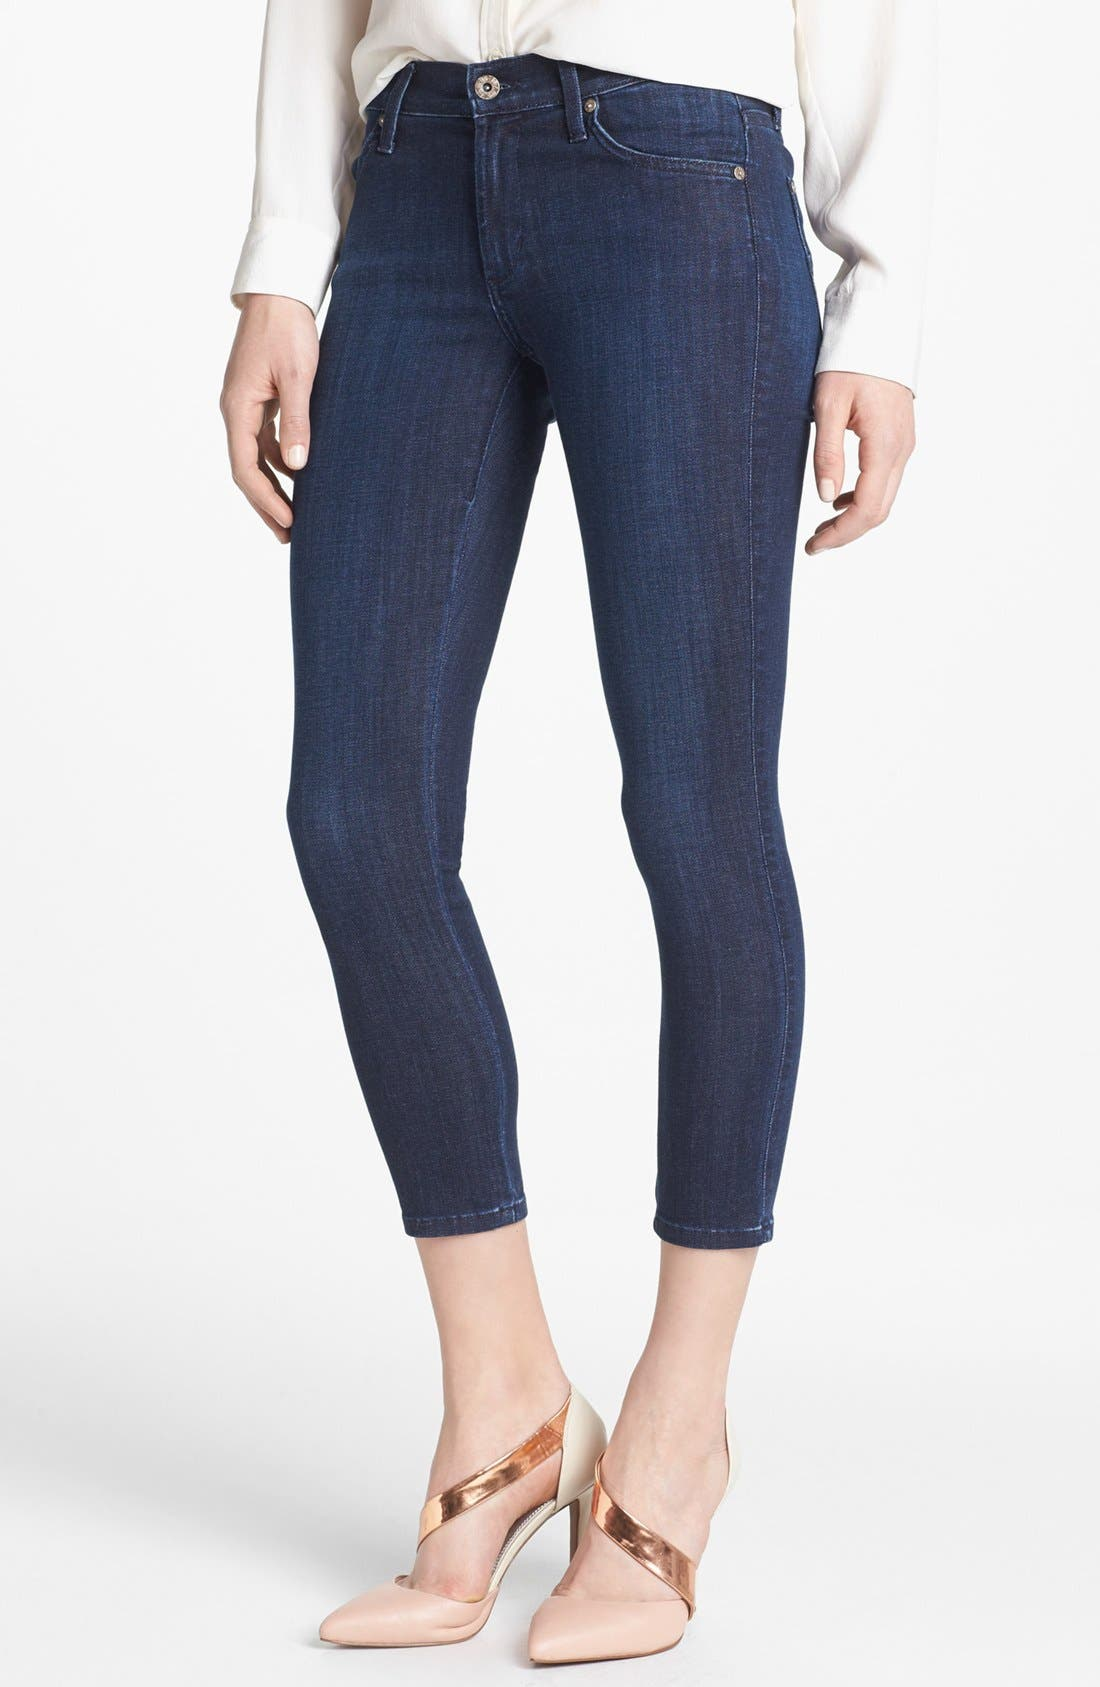 Alternate Image 1 Selected - James Jeans Crop Skinny Jeans (Petite) (Online Only)